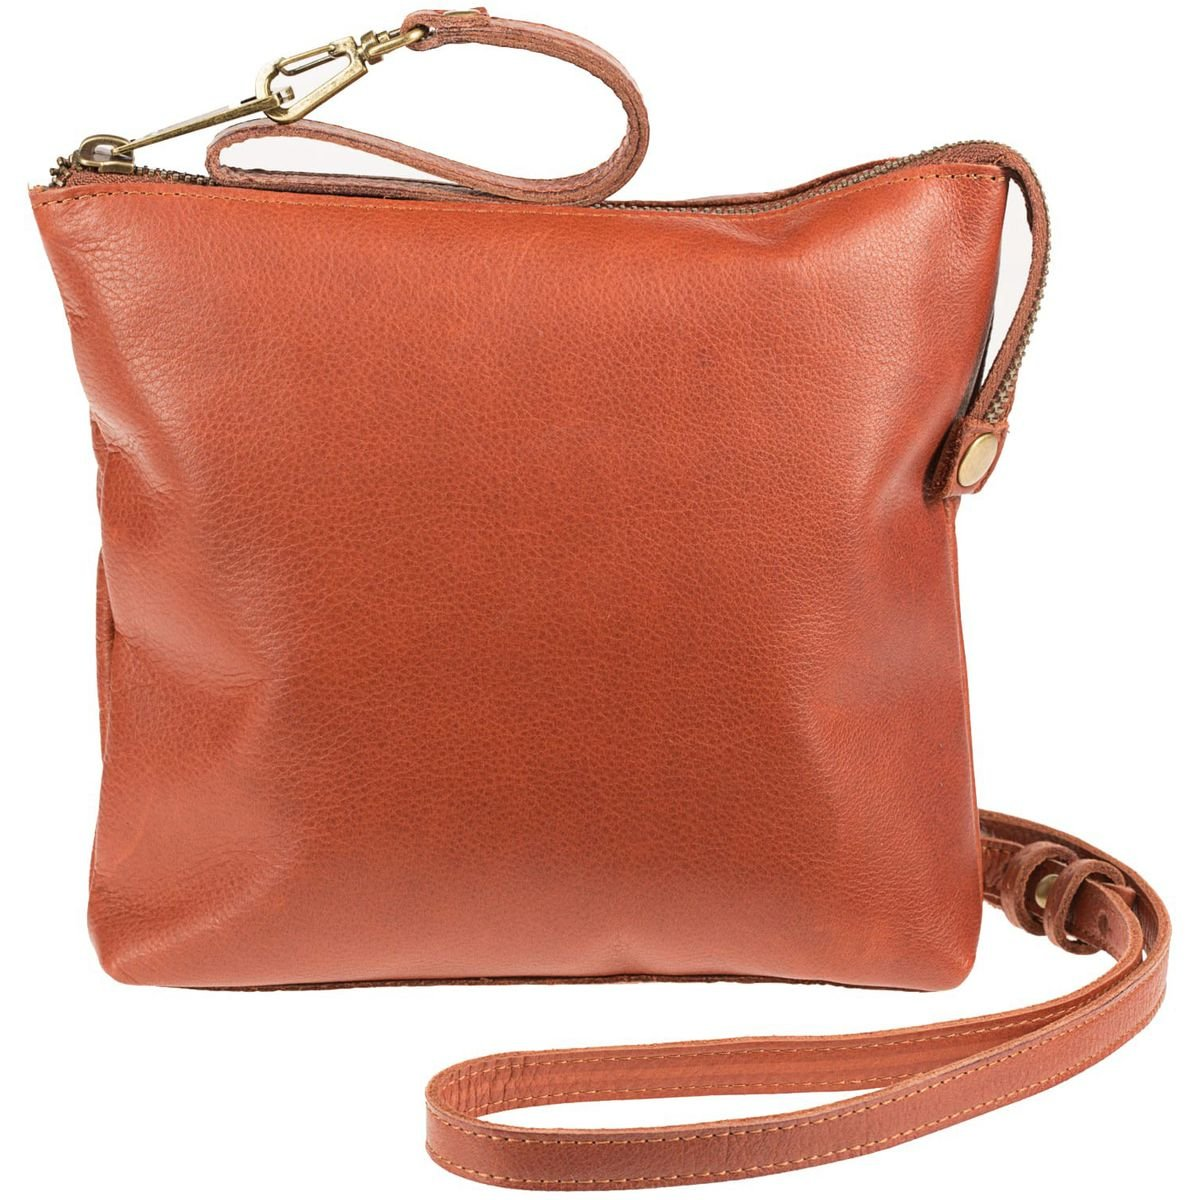 Will Leather Goods Petal Crossbody Purse - Women's Cognac, One Size by Will Leather Goods